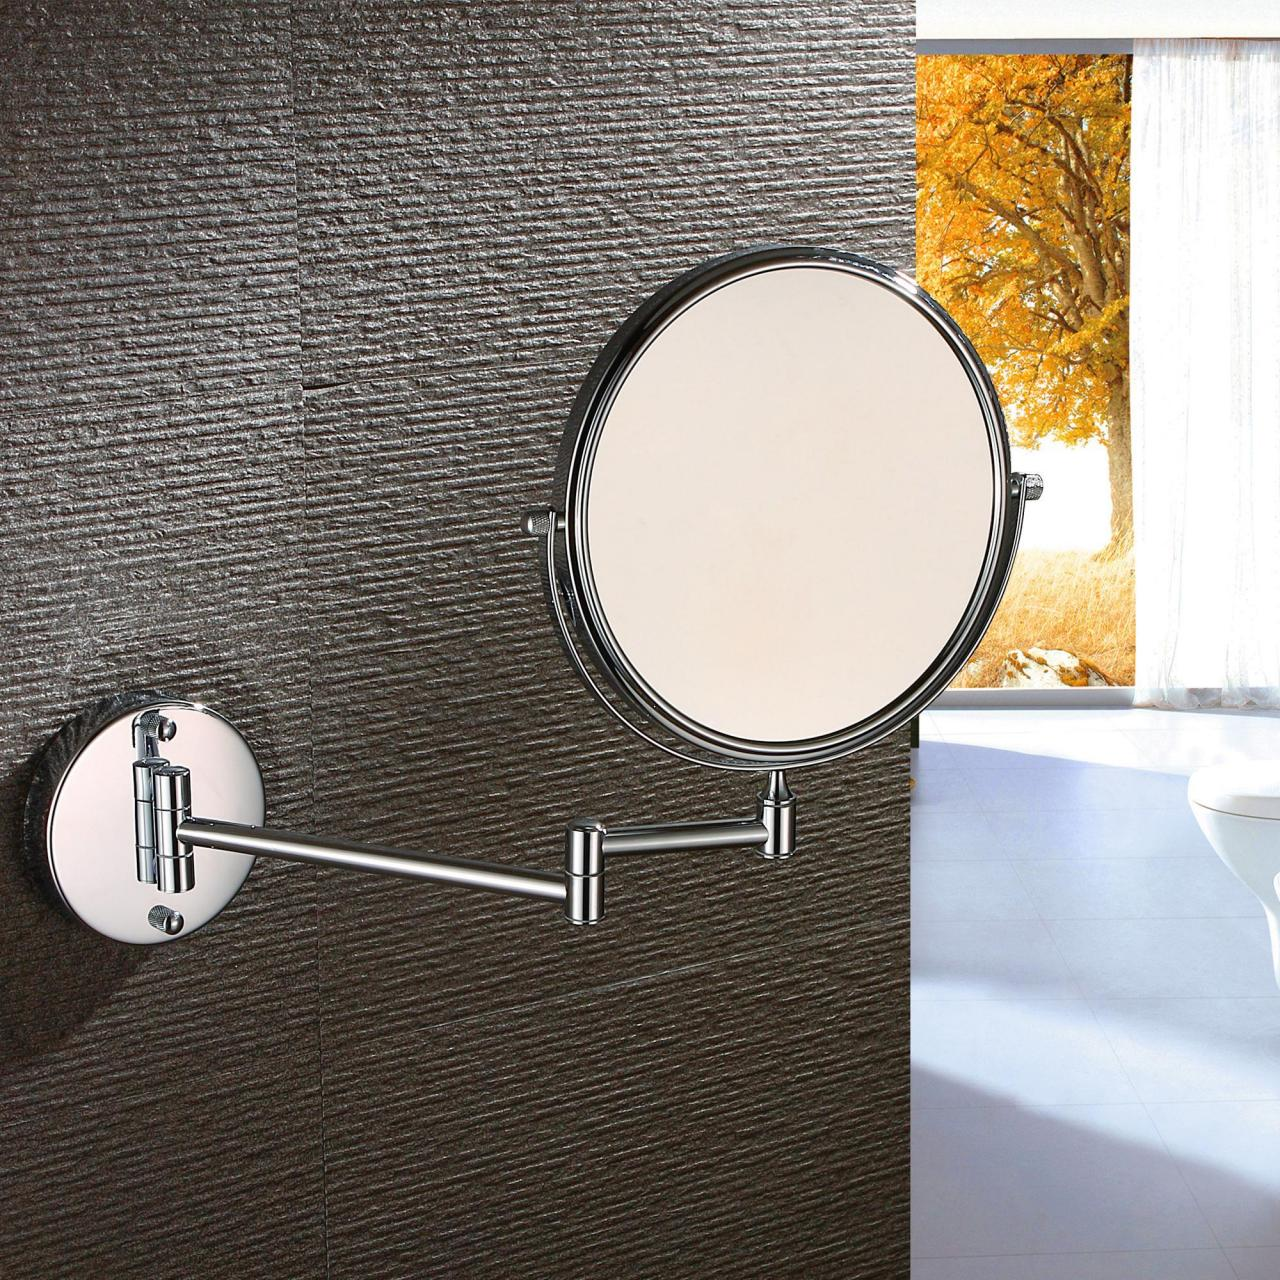 Conventional mirror Manufactures